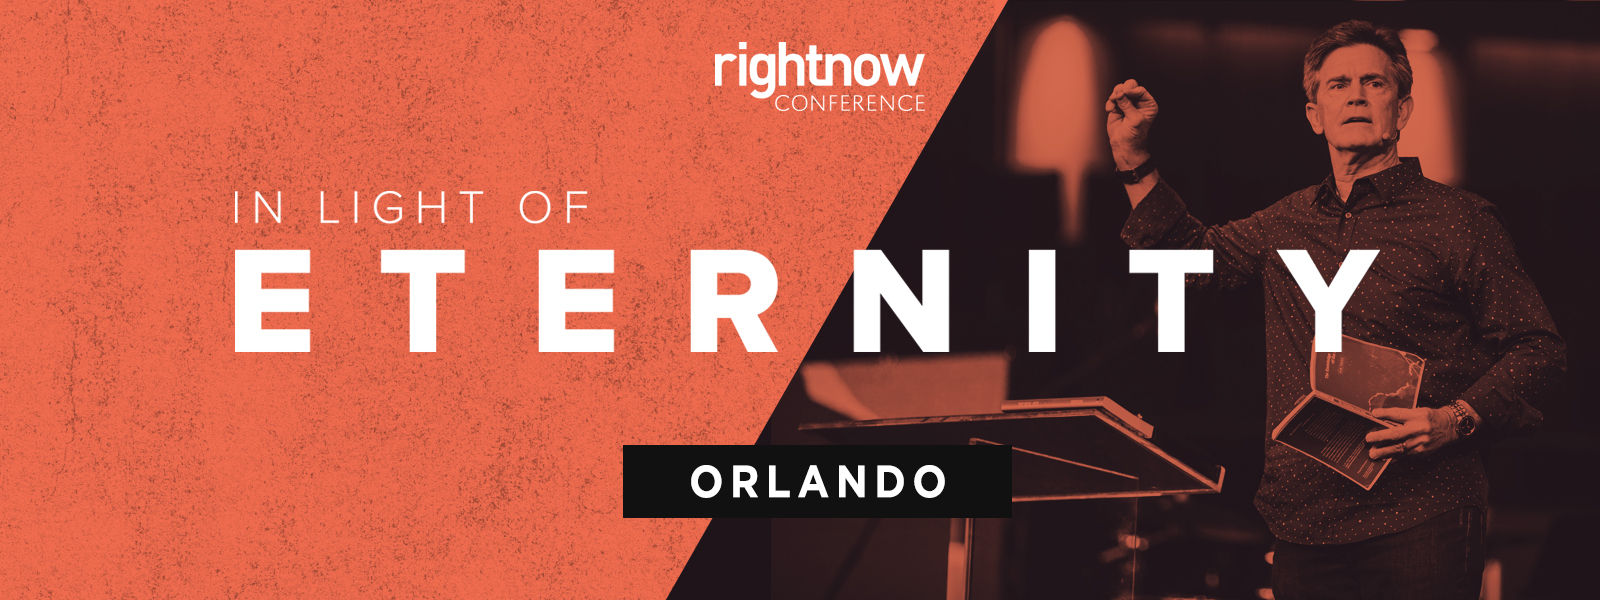 RightNow Conference 2018 (Orlando)